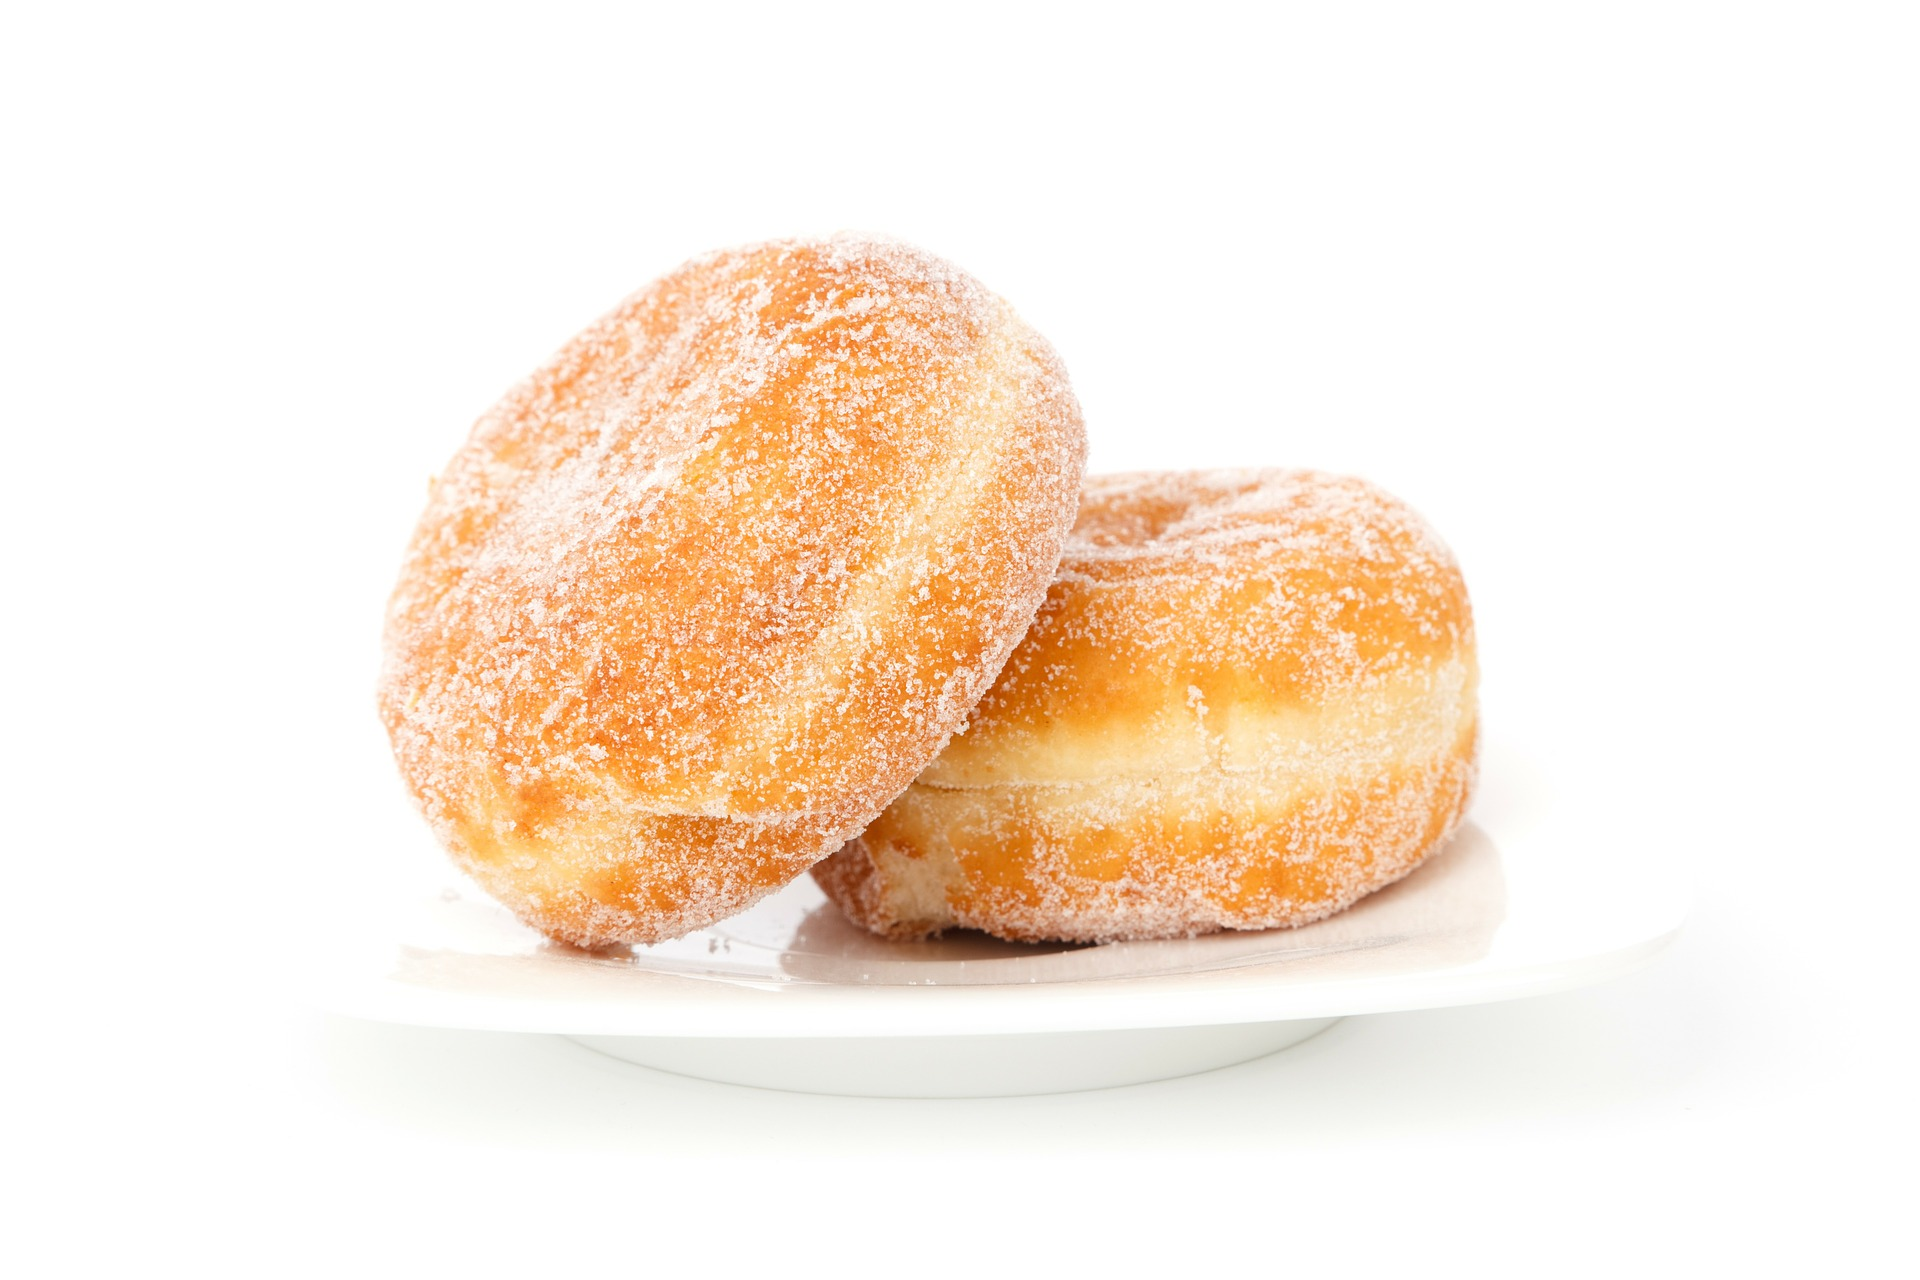 Sugar covered donuts